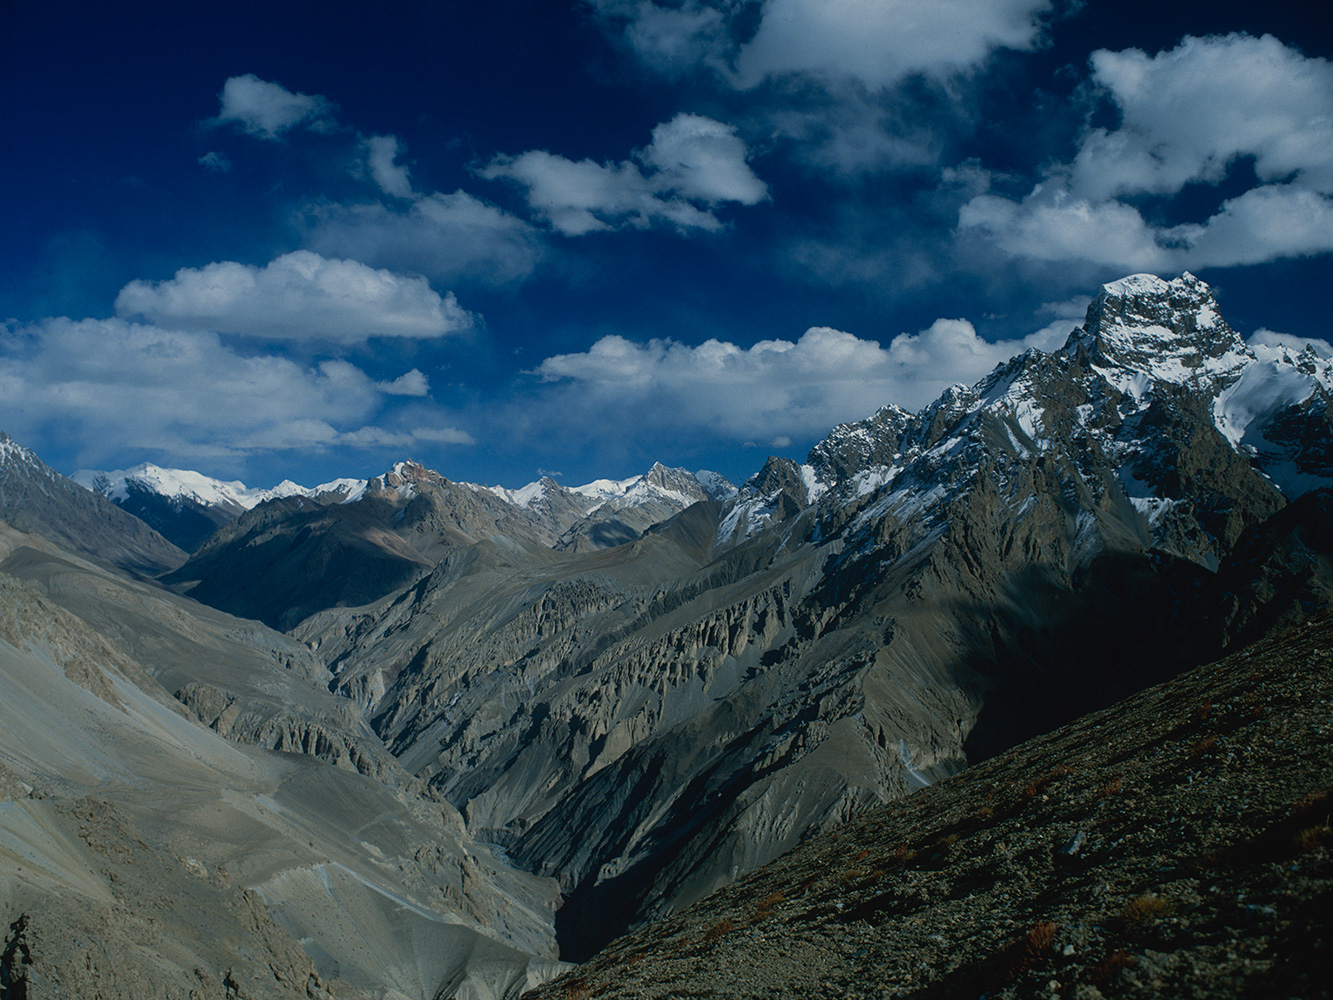 The Pamir-i-Tang is the name given to the upper Shimshal river, and it is through this difficult valley that most of the village and all their livestock migrate every spring to the summer pastures at Shujerab and Shuwert. On the right is the mountain massif of Chot Pert.